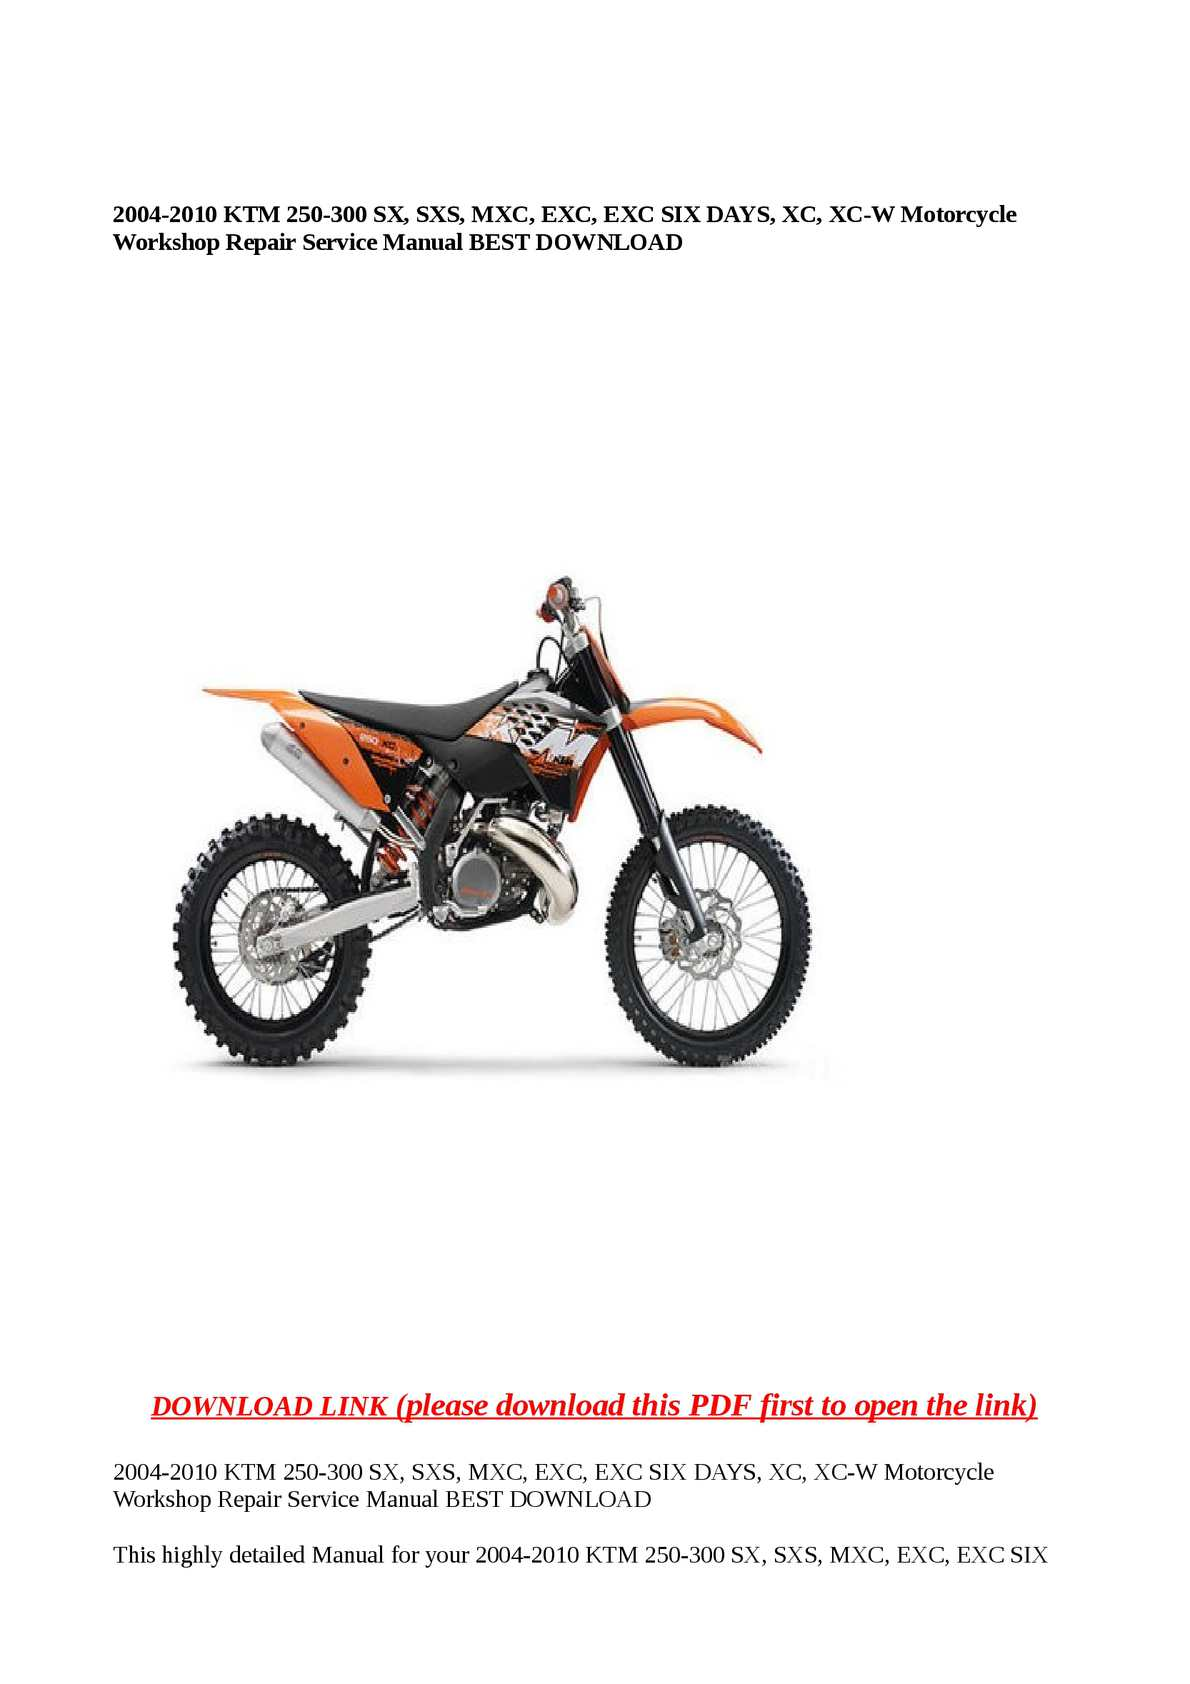 Calamo 2004 2010 Ktm 250 300 Sx Sxs Mxc Exc Six Days Xc Engine Diagram W Motorcycle Workshop Repair Service Manual Best Download